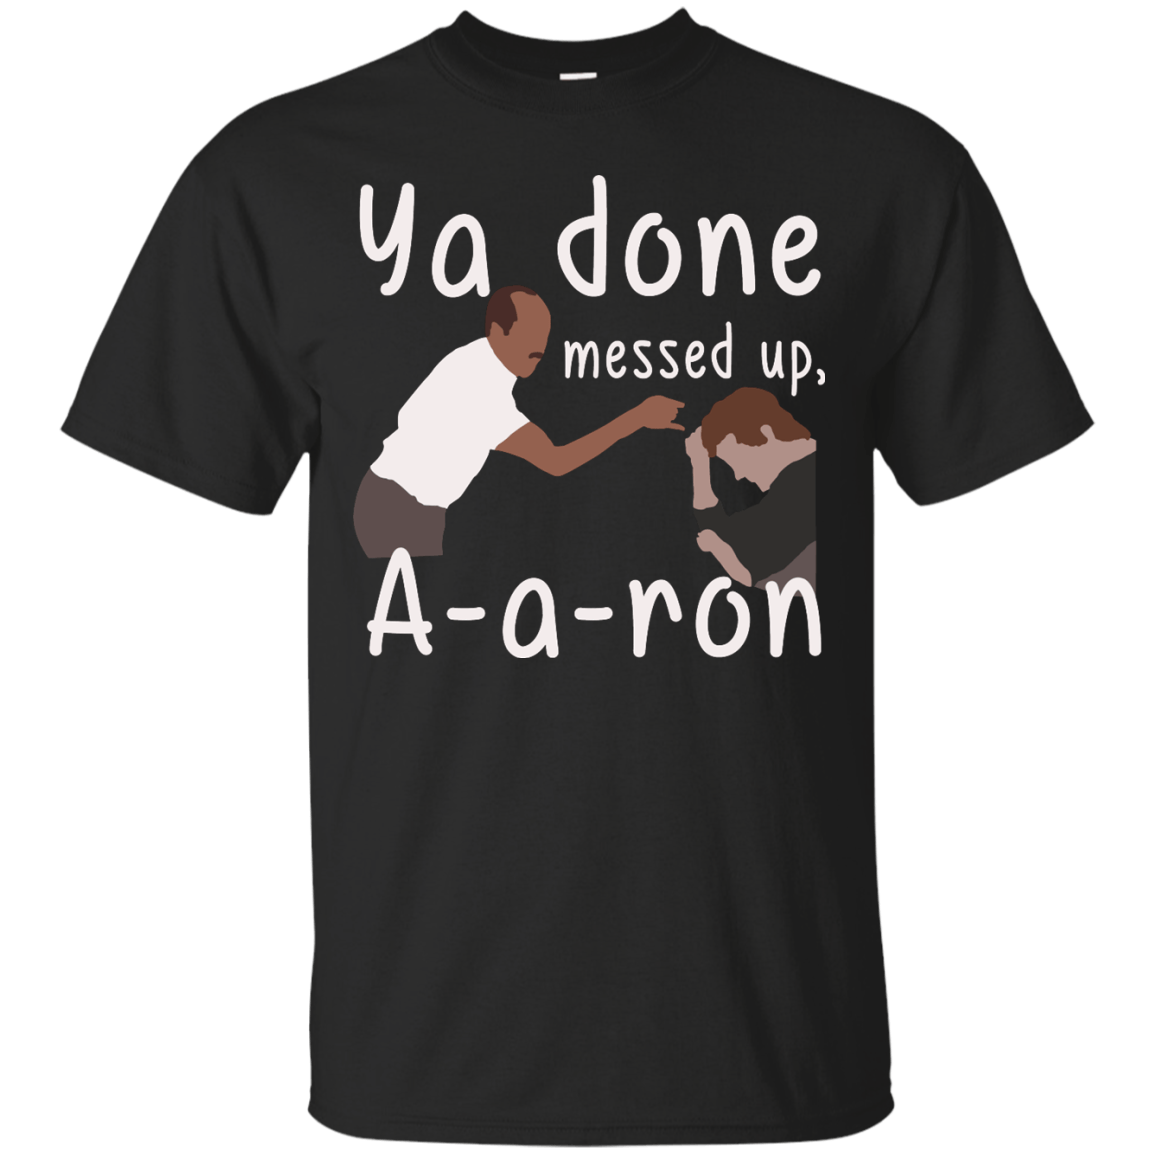 Ya you done messed up a a ron, aaron t shirt, hoodies, tank top